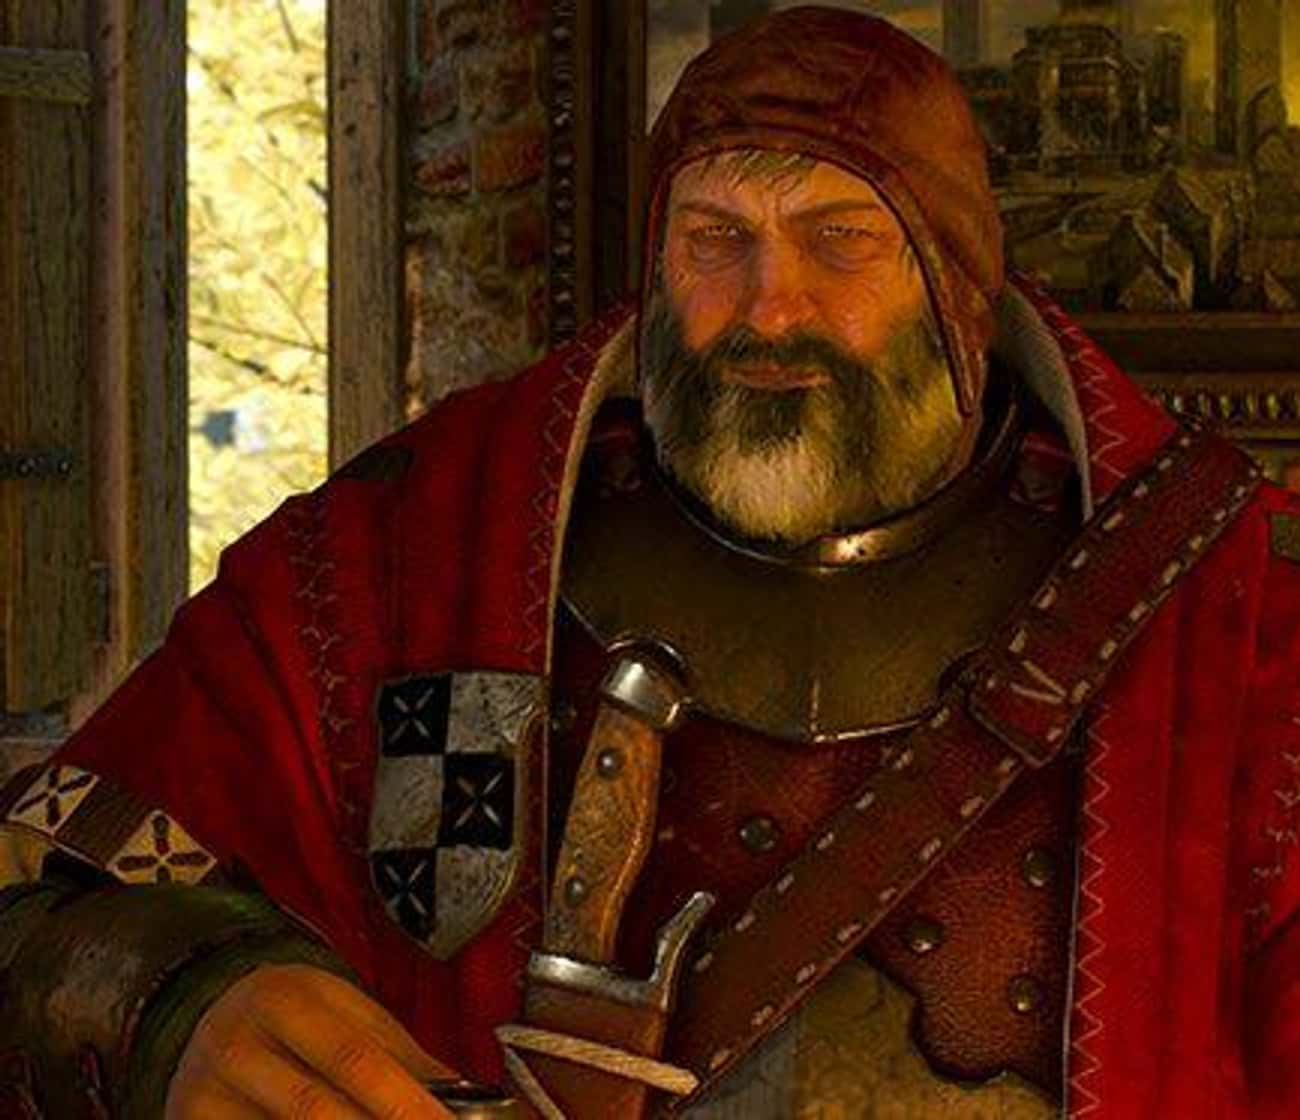 Black And White is listed (or ranked) 4 on the list 25 'Witcher 3' Quotes That Are So Good Dandelion Wishes He Wrote Them